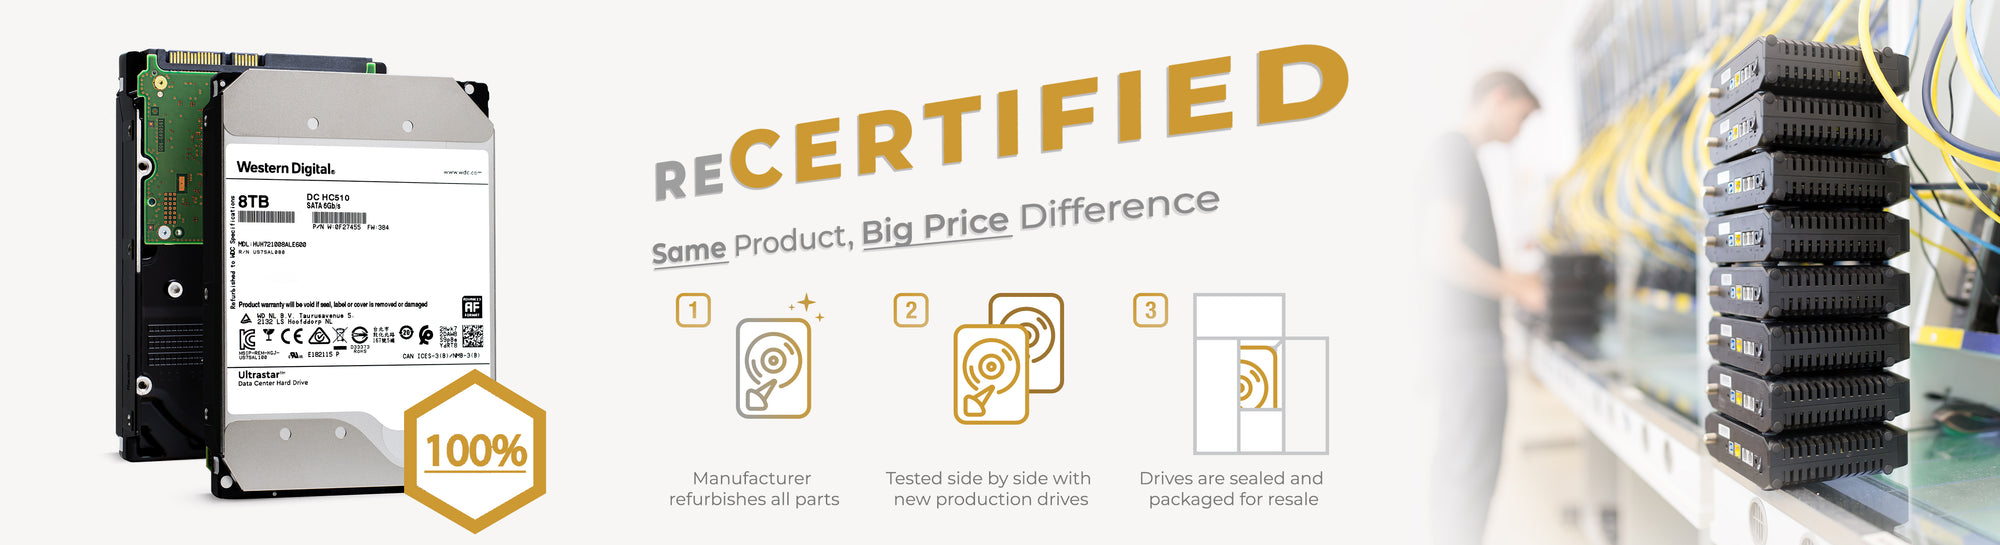 Recertified Enterprise Storage. Same product, big price difference.